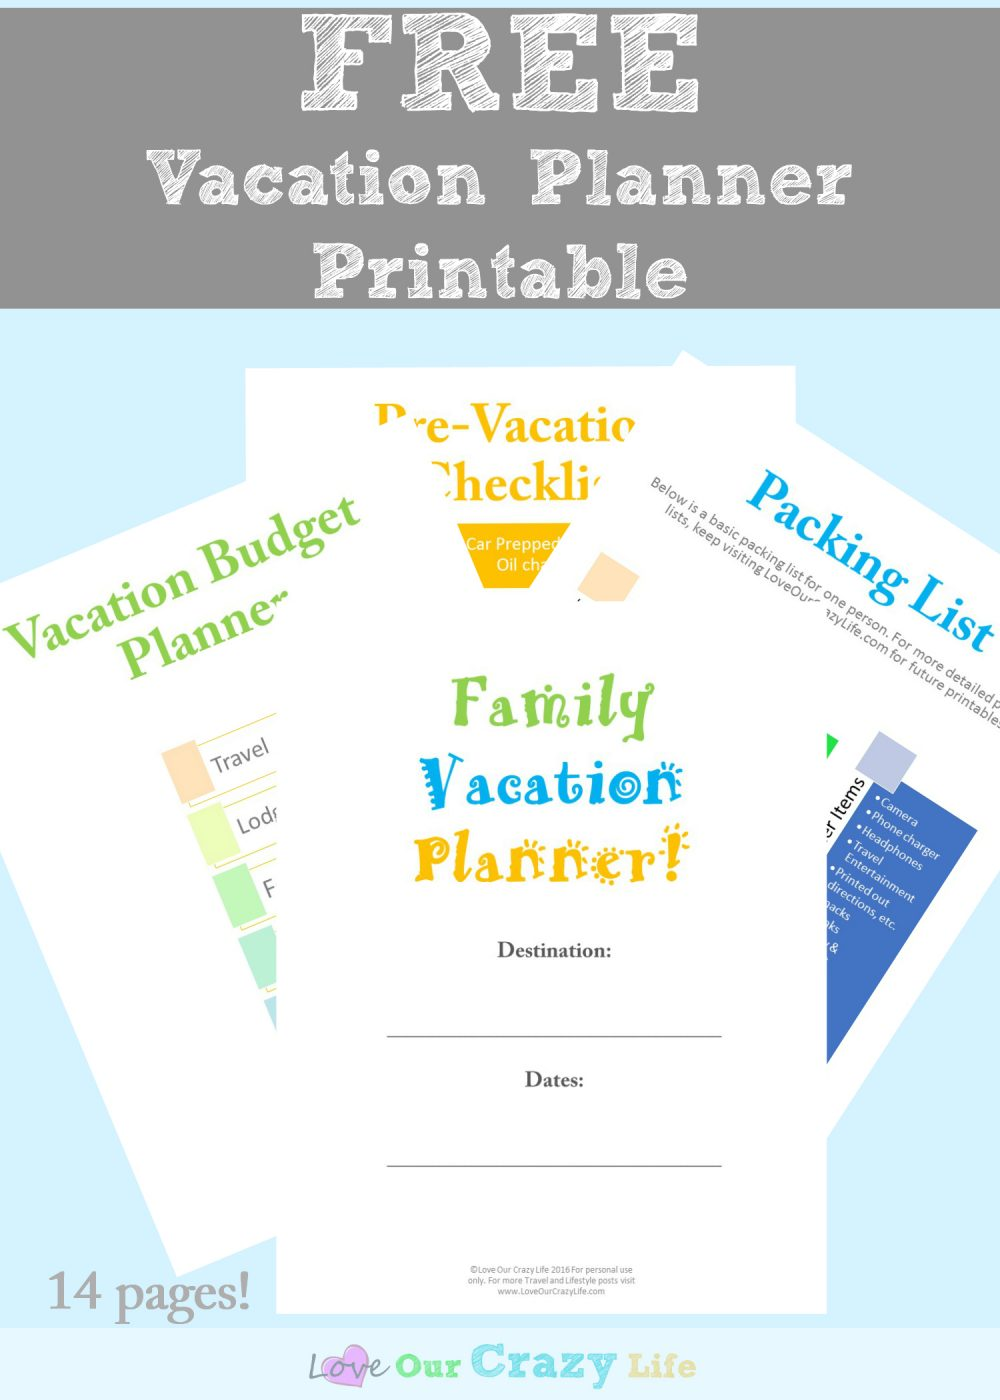 Family Vacation Planning Tips (Free Planner) | This Crazy